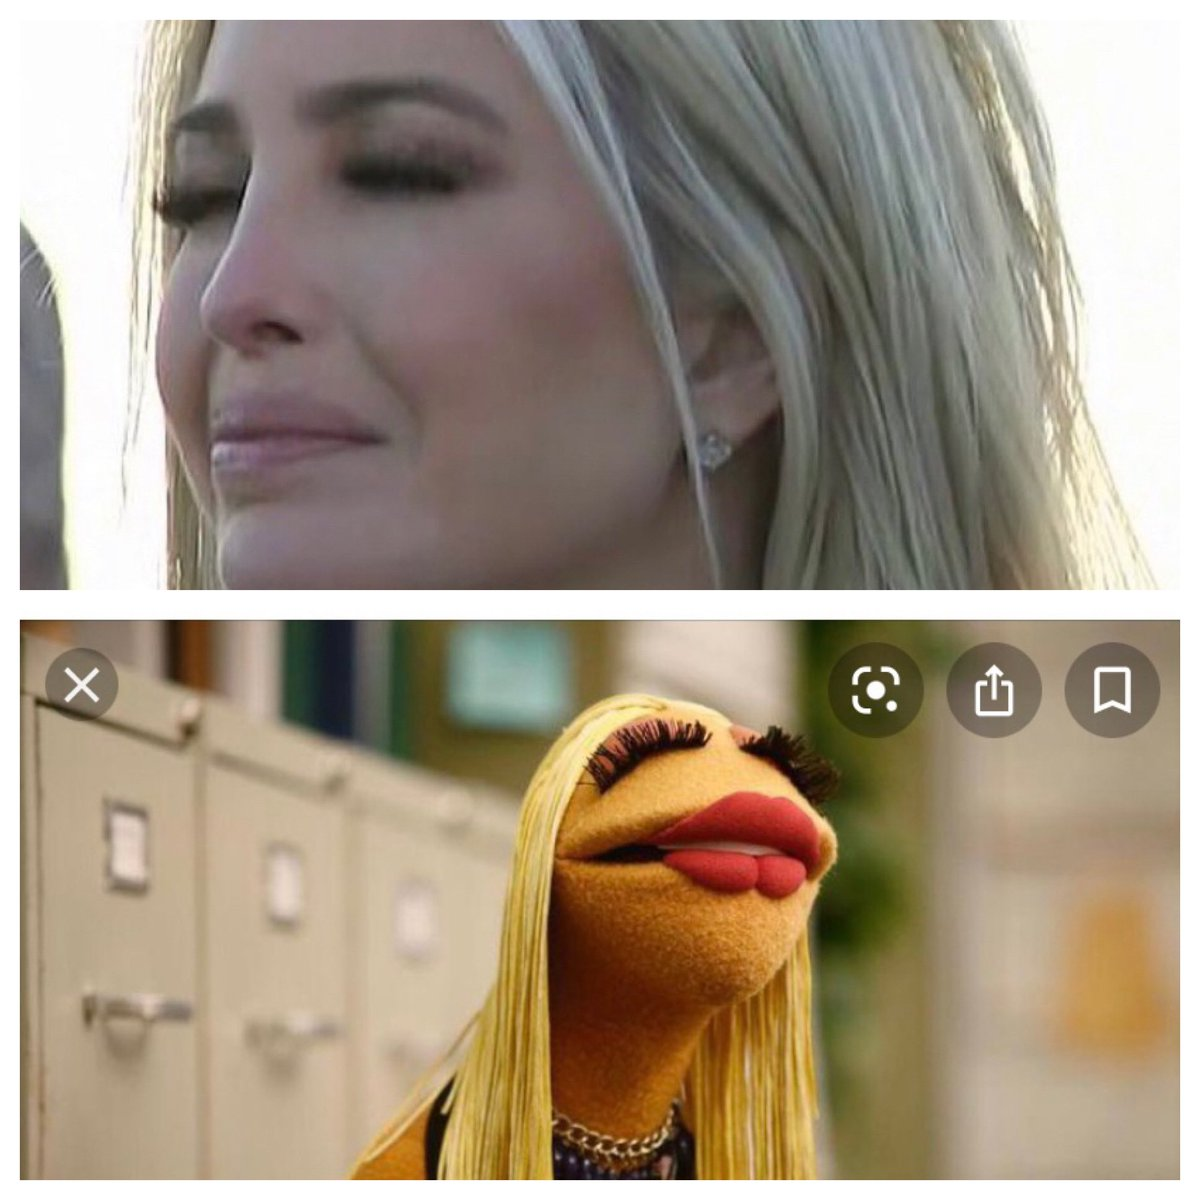 Is it just me or does @IvankaTrump look a lot like this muppet? #IvankaForPrison